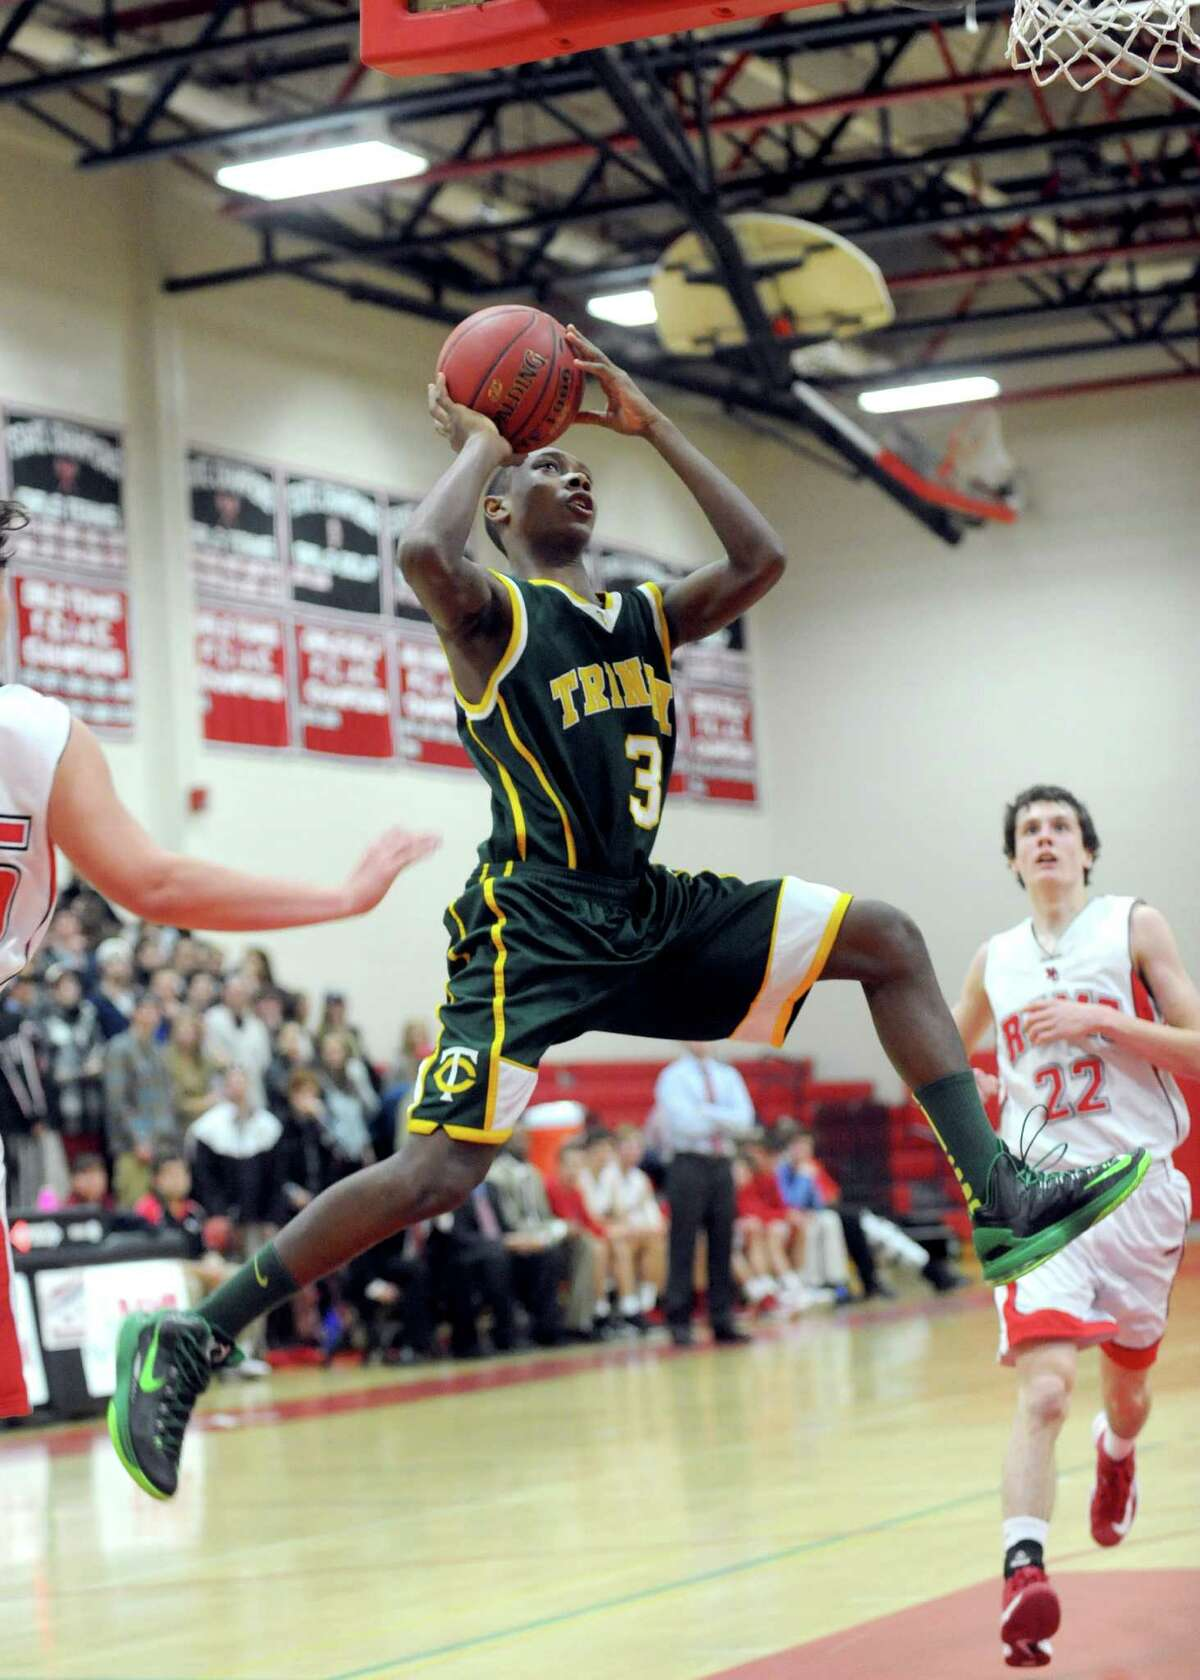 Trinity Catholic's Tremaine Fraiser takes a shot during Friday's boys basketball game at New Canaan High School on January 25, 2013.